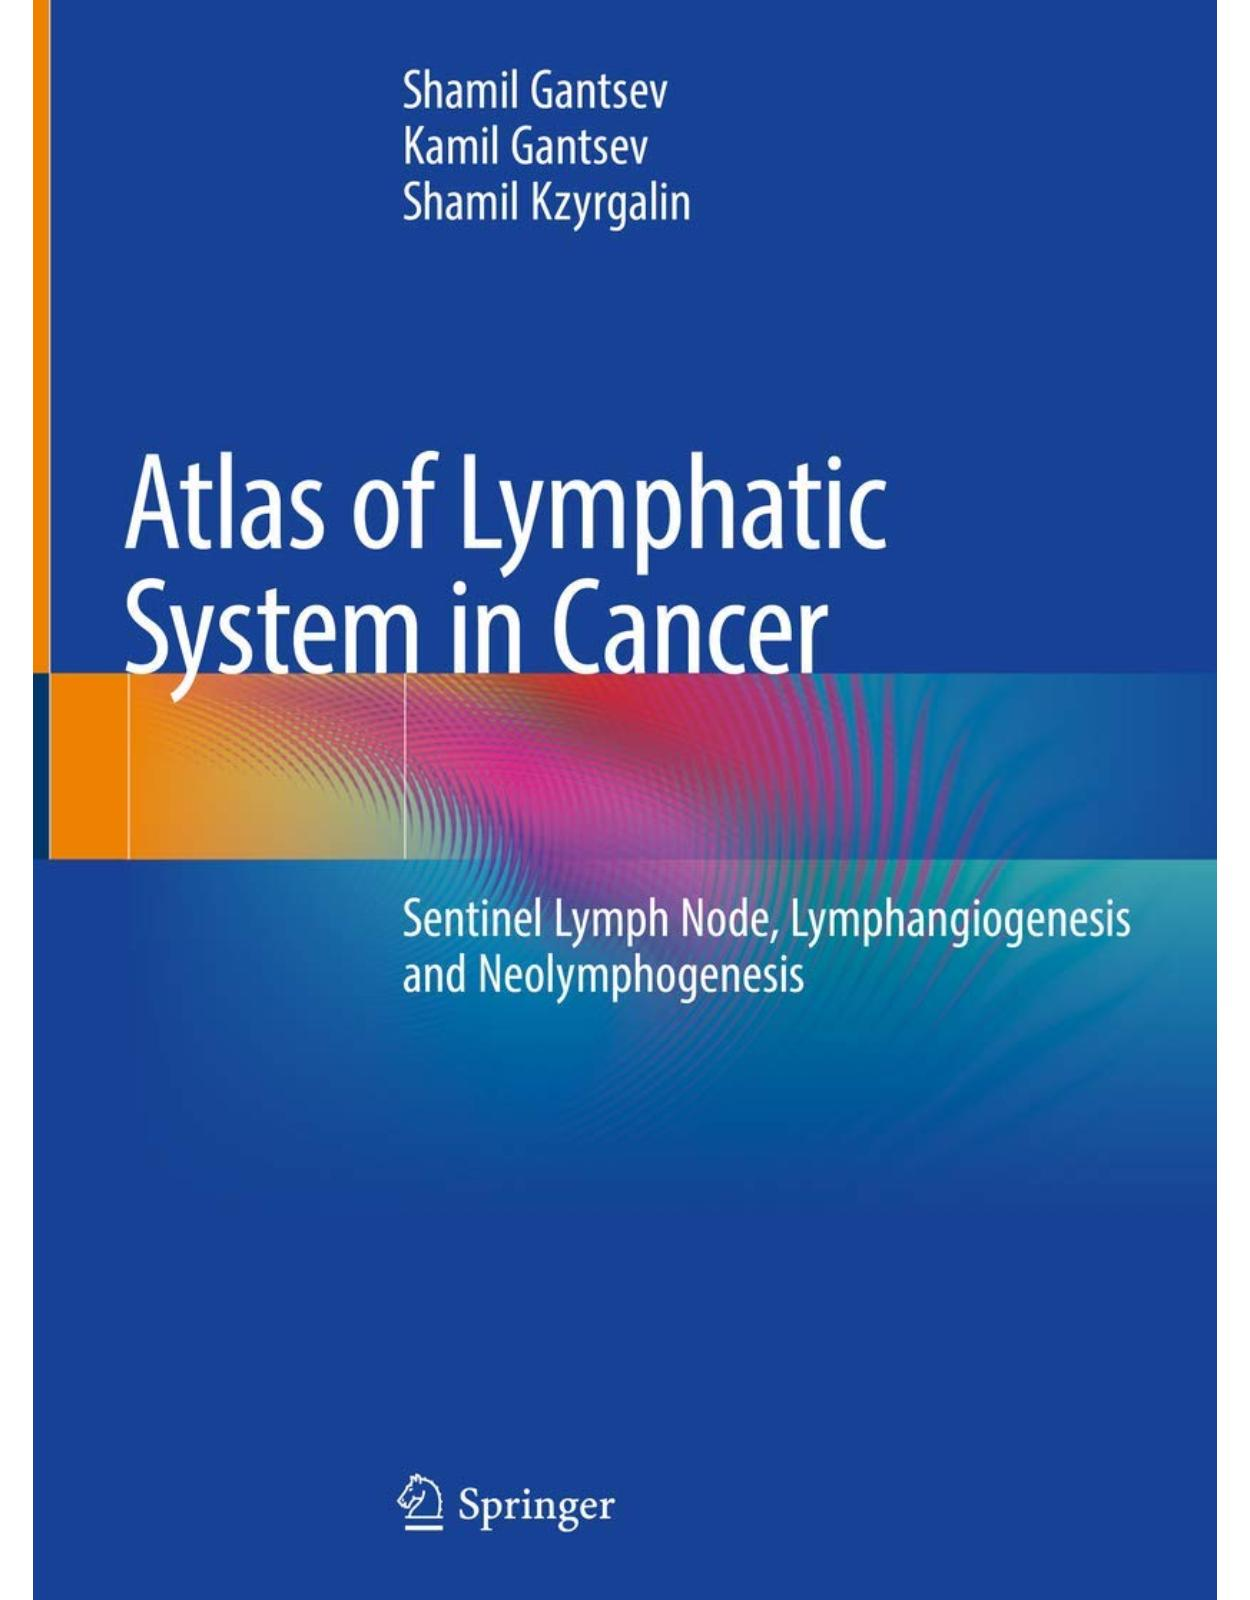 Atlas of Lymphatic System in Cancer. Sentinel Lymph Node, Lymphangiogenesis and Neolymphogenesis